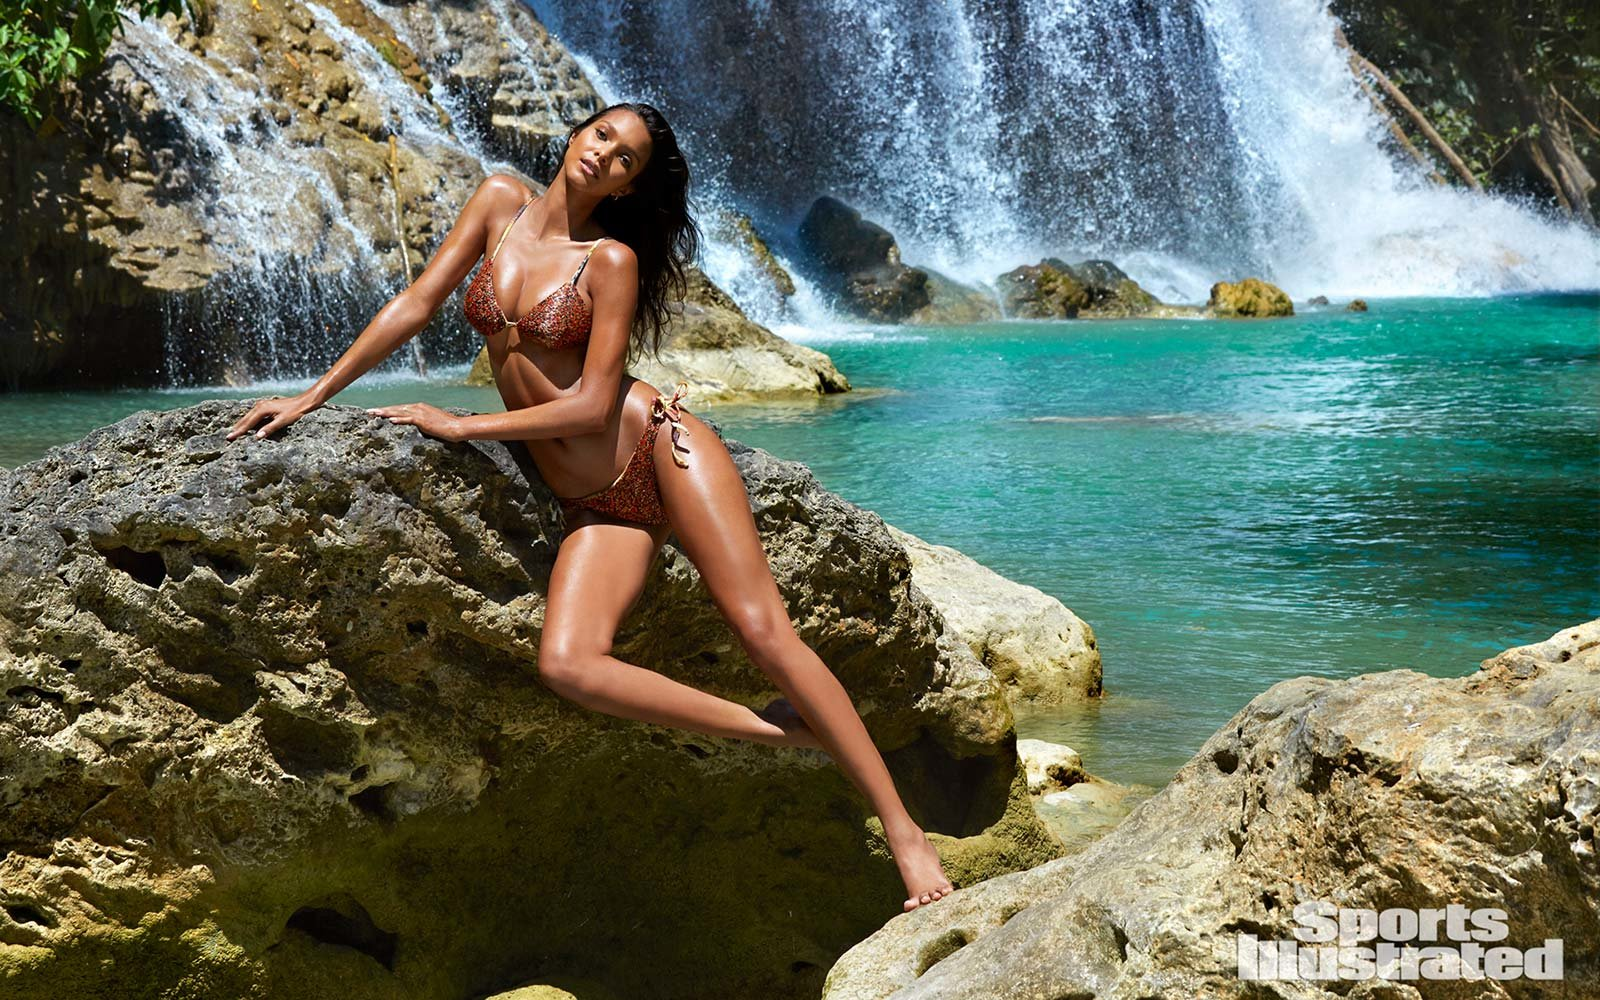 Sports Illustrated: Swimsuit issue location spotlight